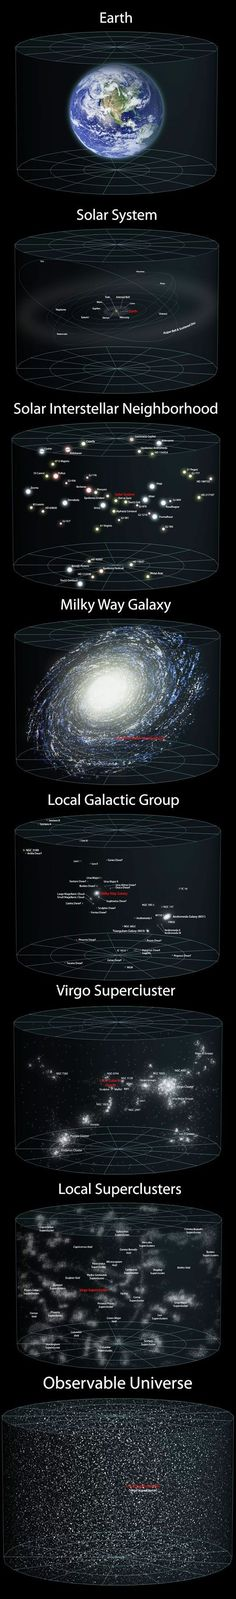 Perspective in space proportions - just when you thought you knew how vast the universe was./ Cosmos / Universo / Milki Way Galaxy / Earth / Solar System / Universe / Galactic Sistema Solar, Cosmos, Space And Astronomy, Hubble Space, Space Telescope, Carl Sagan, Space Time, Space Space, To Infinity And Beyond